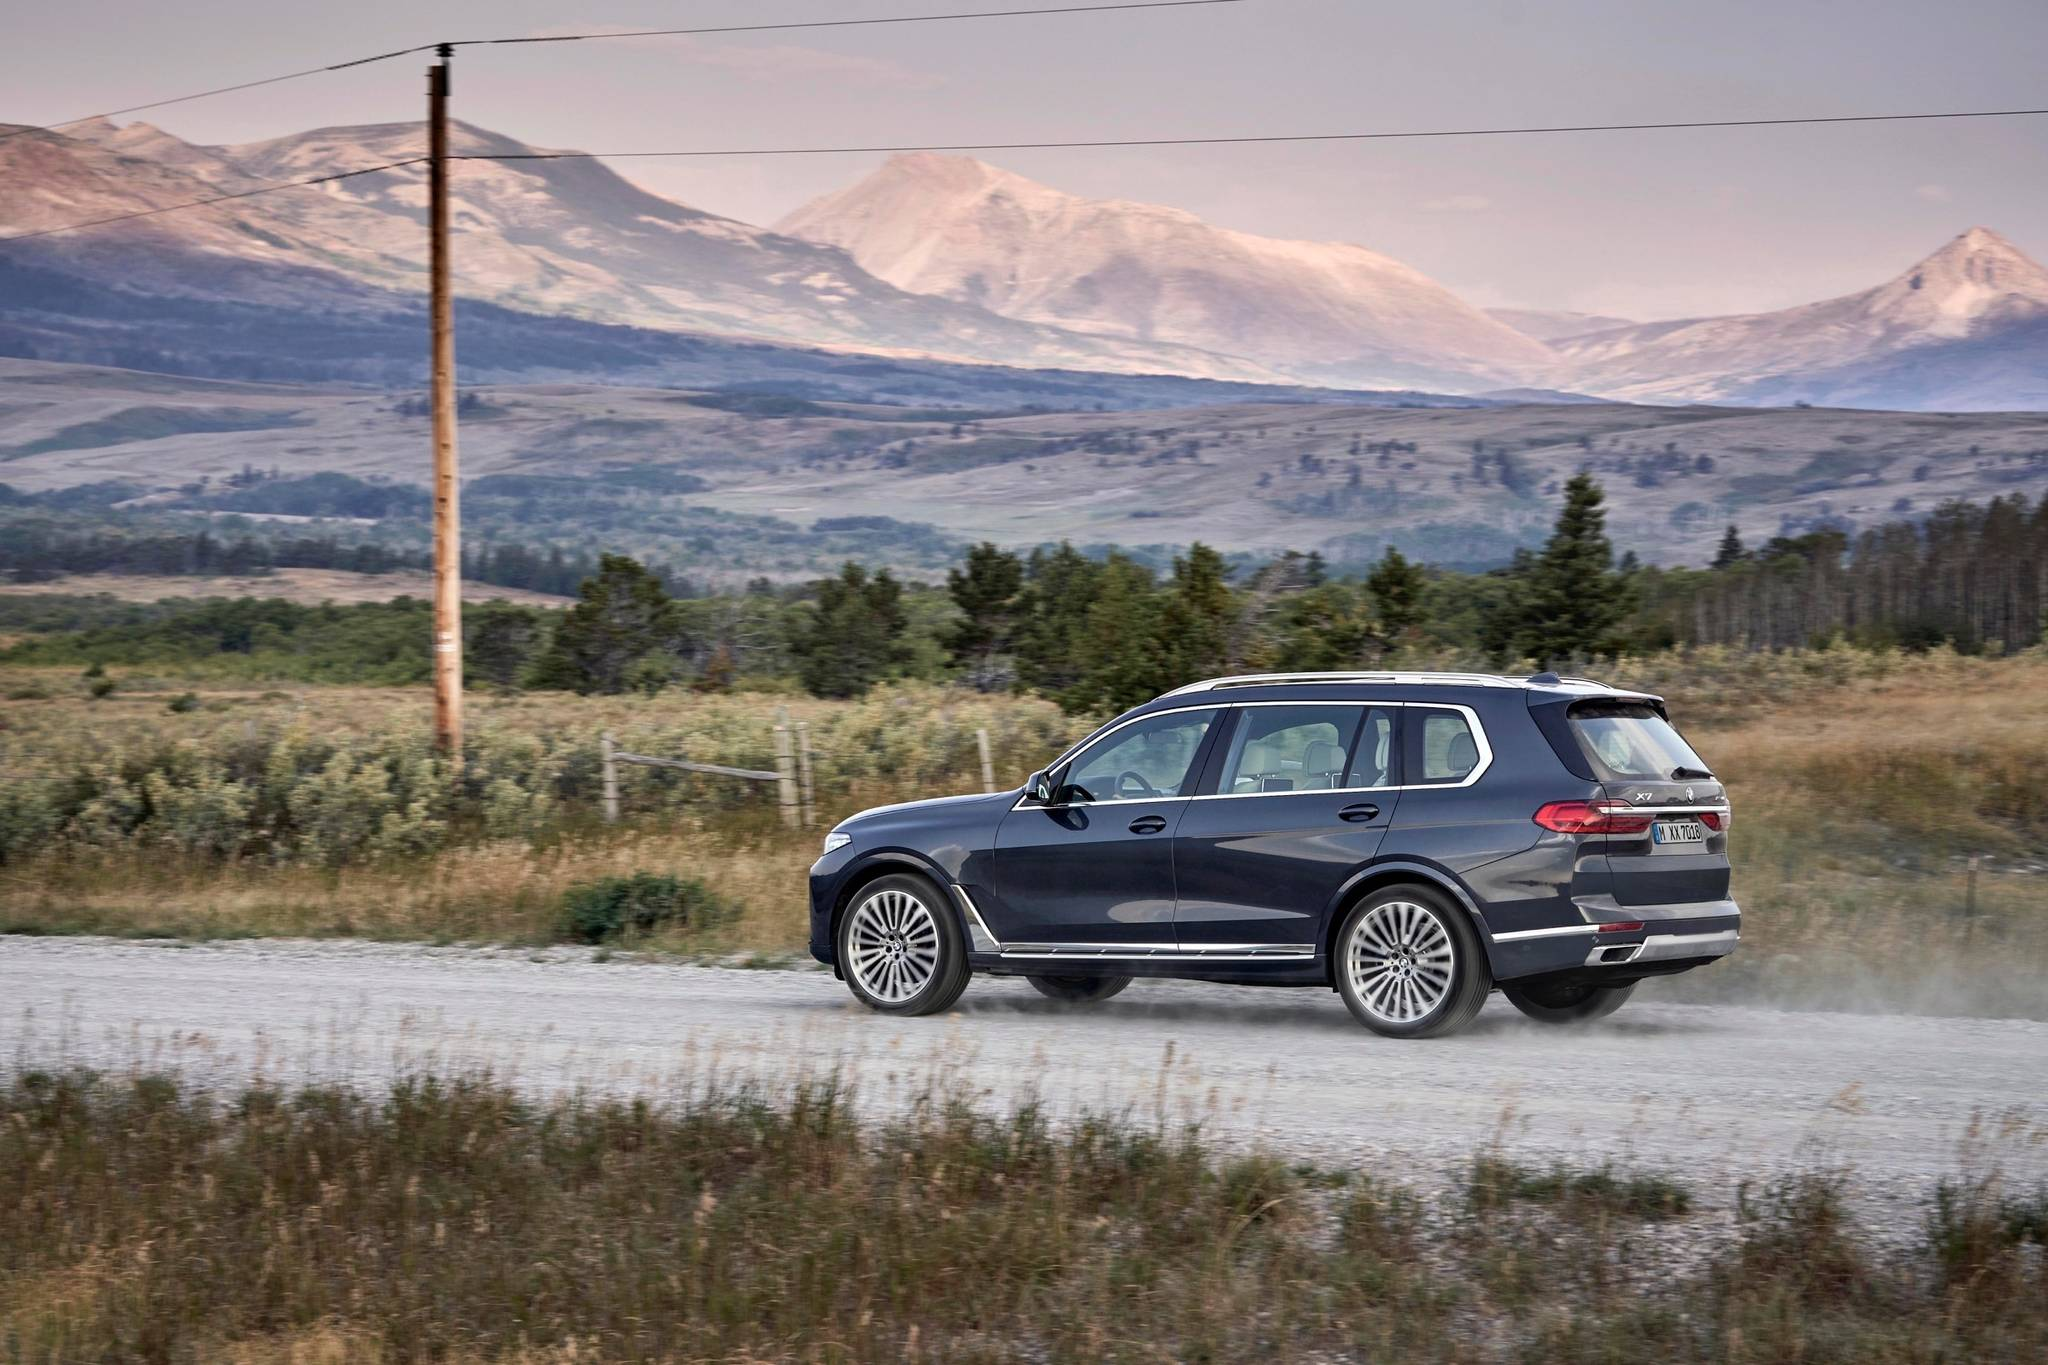 The advantage the X7 has over the X5 is size —specifically length — plain and simple. Otherwise, the engine and transmission choices are the same. Photo: BMW